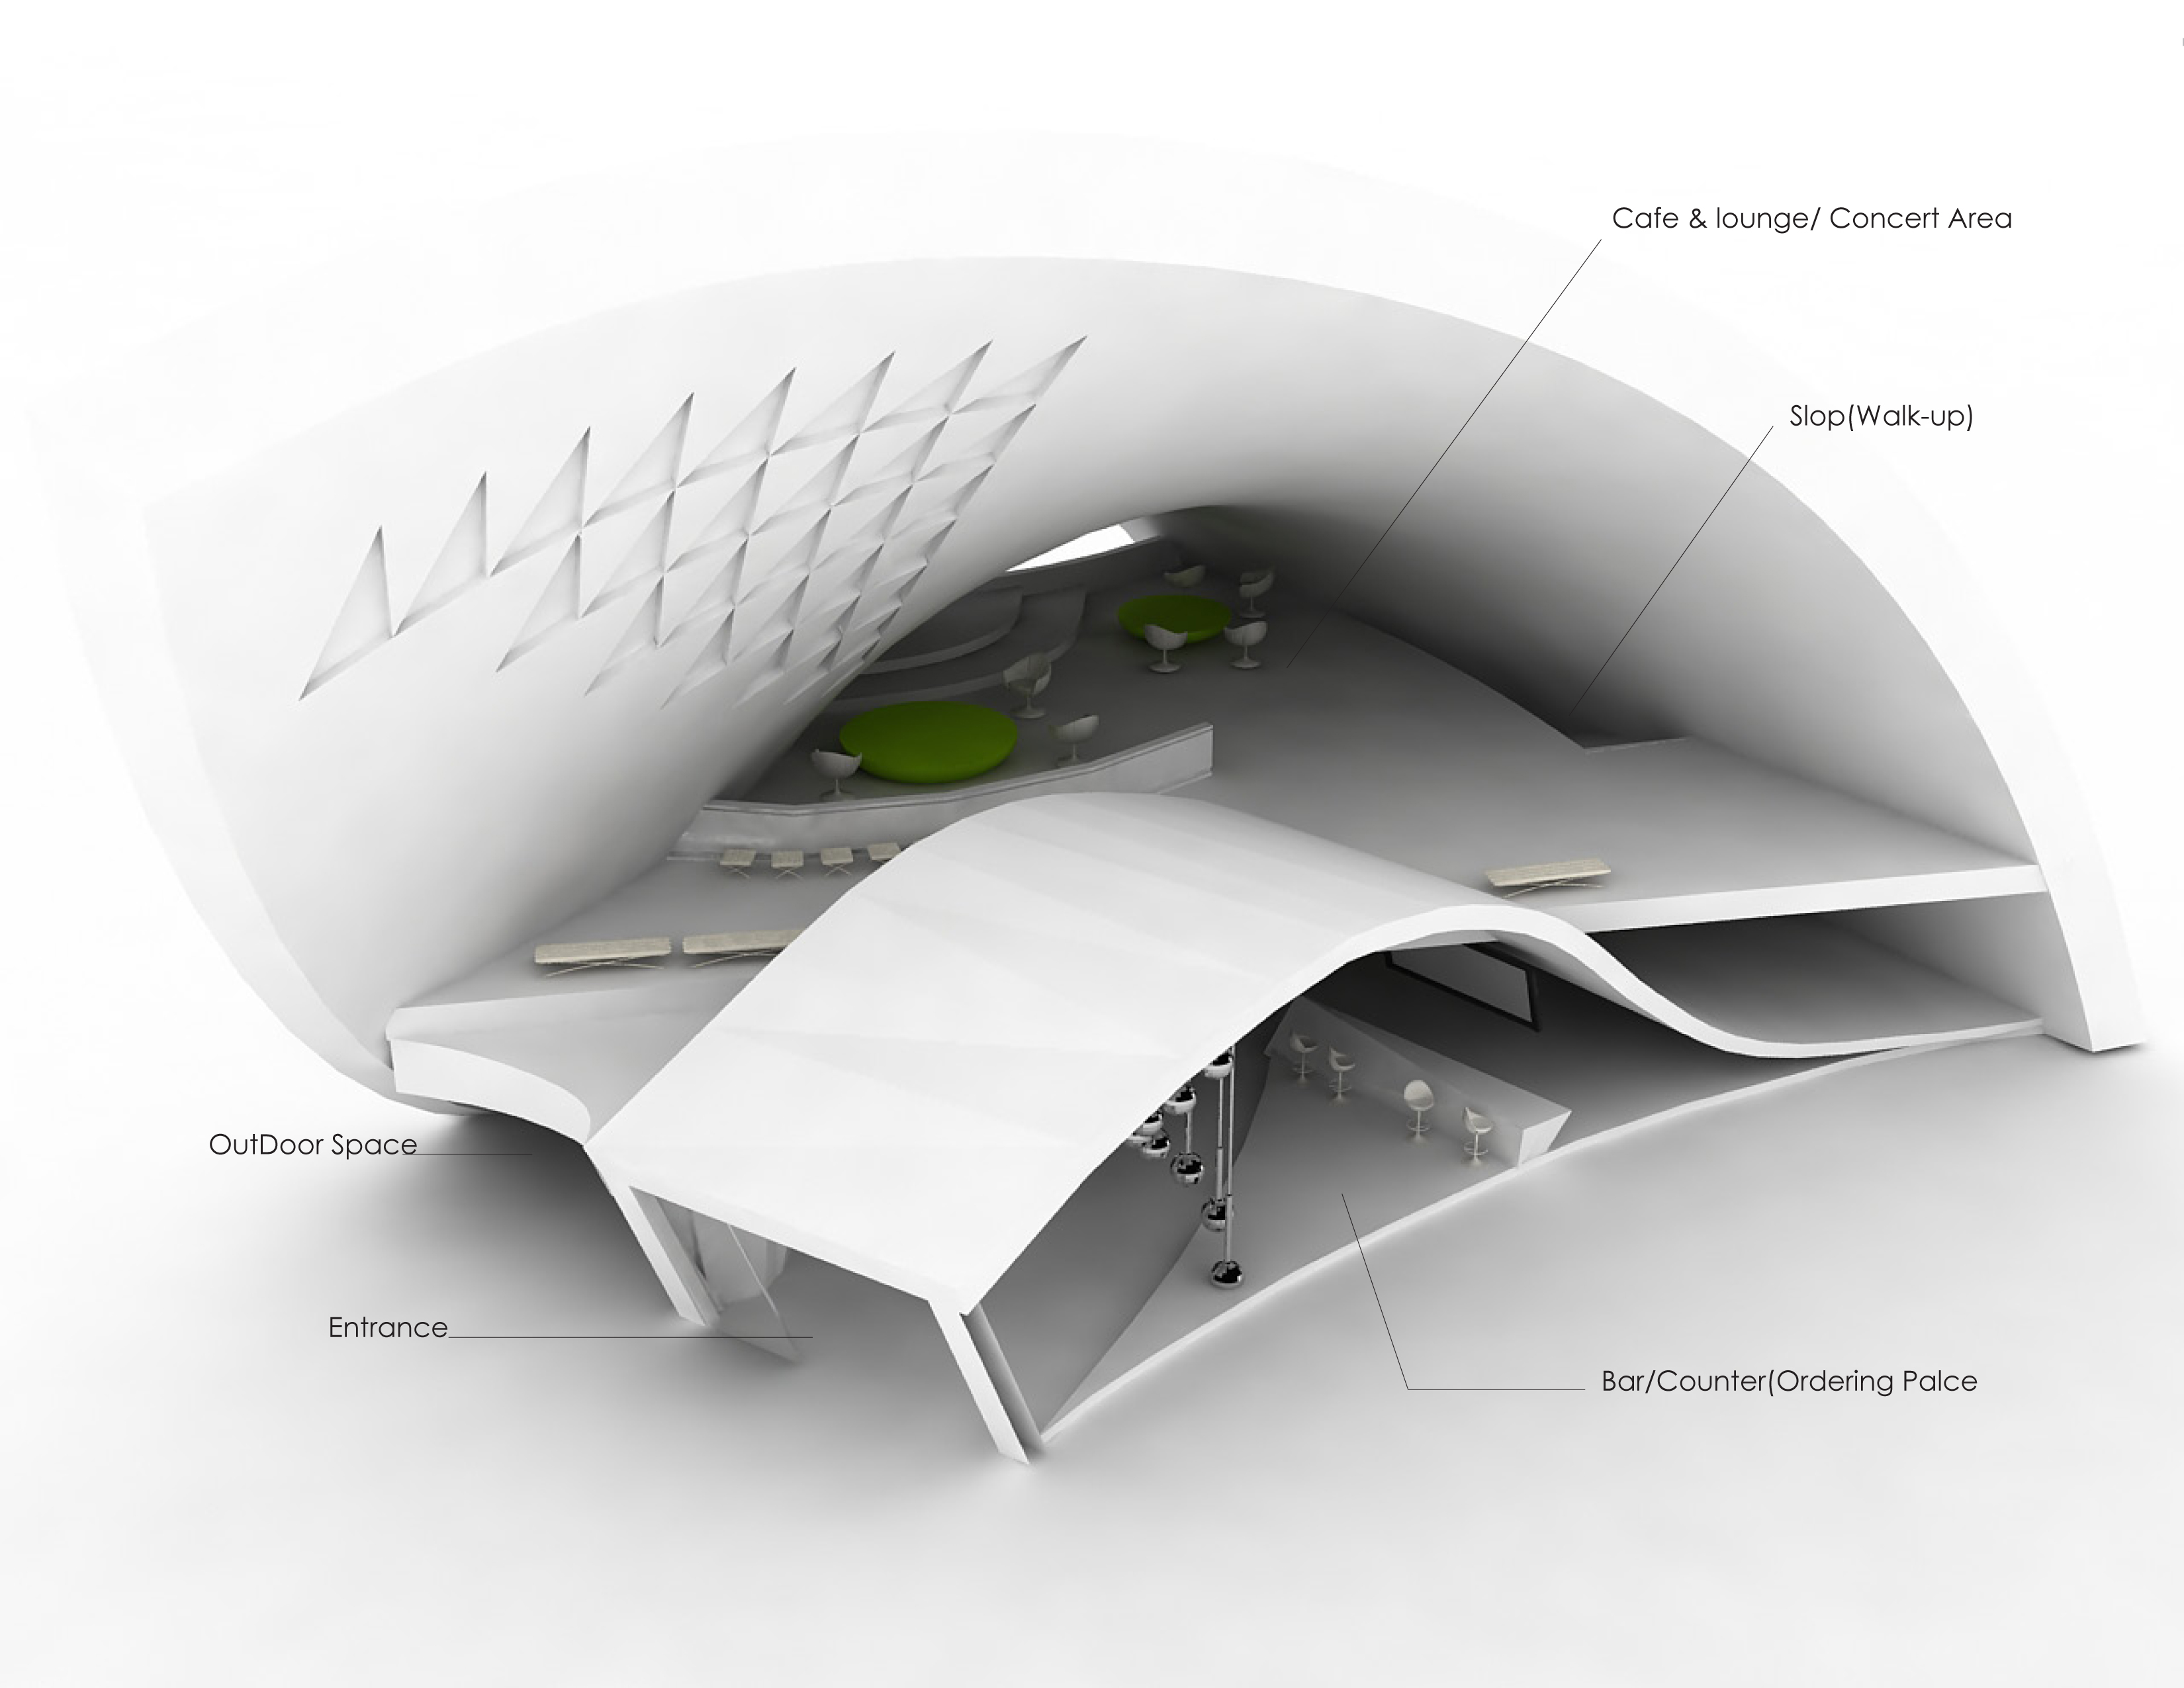 Curved Architecture Architecture By Yoonjung Heo At Coroflotcom